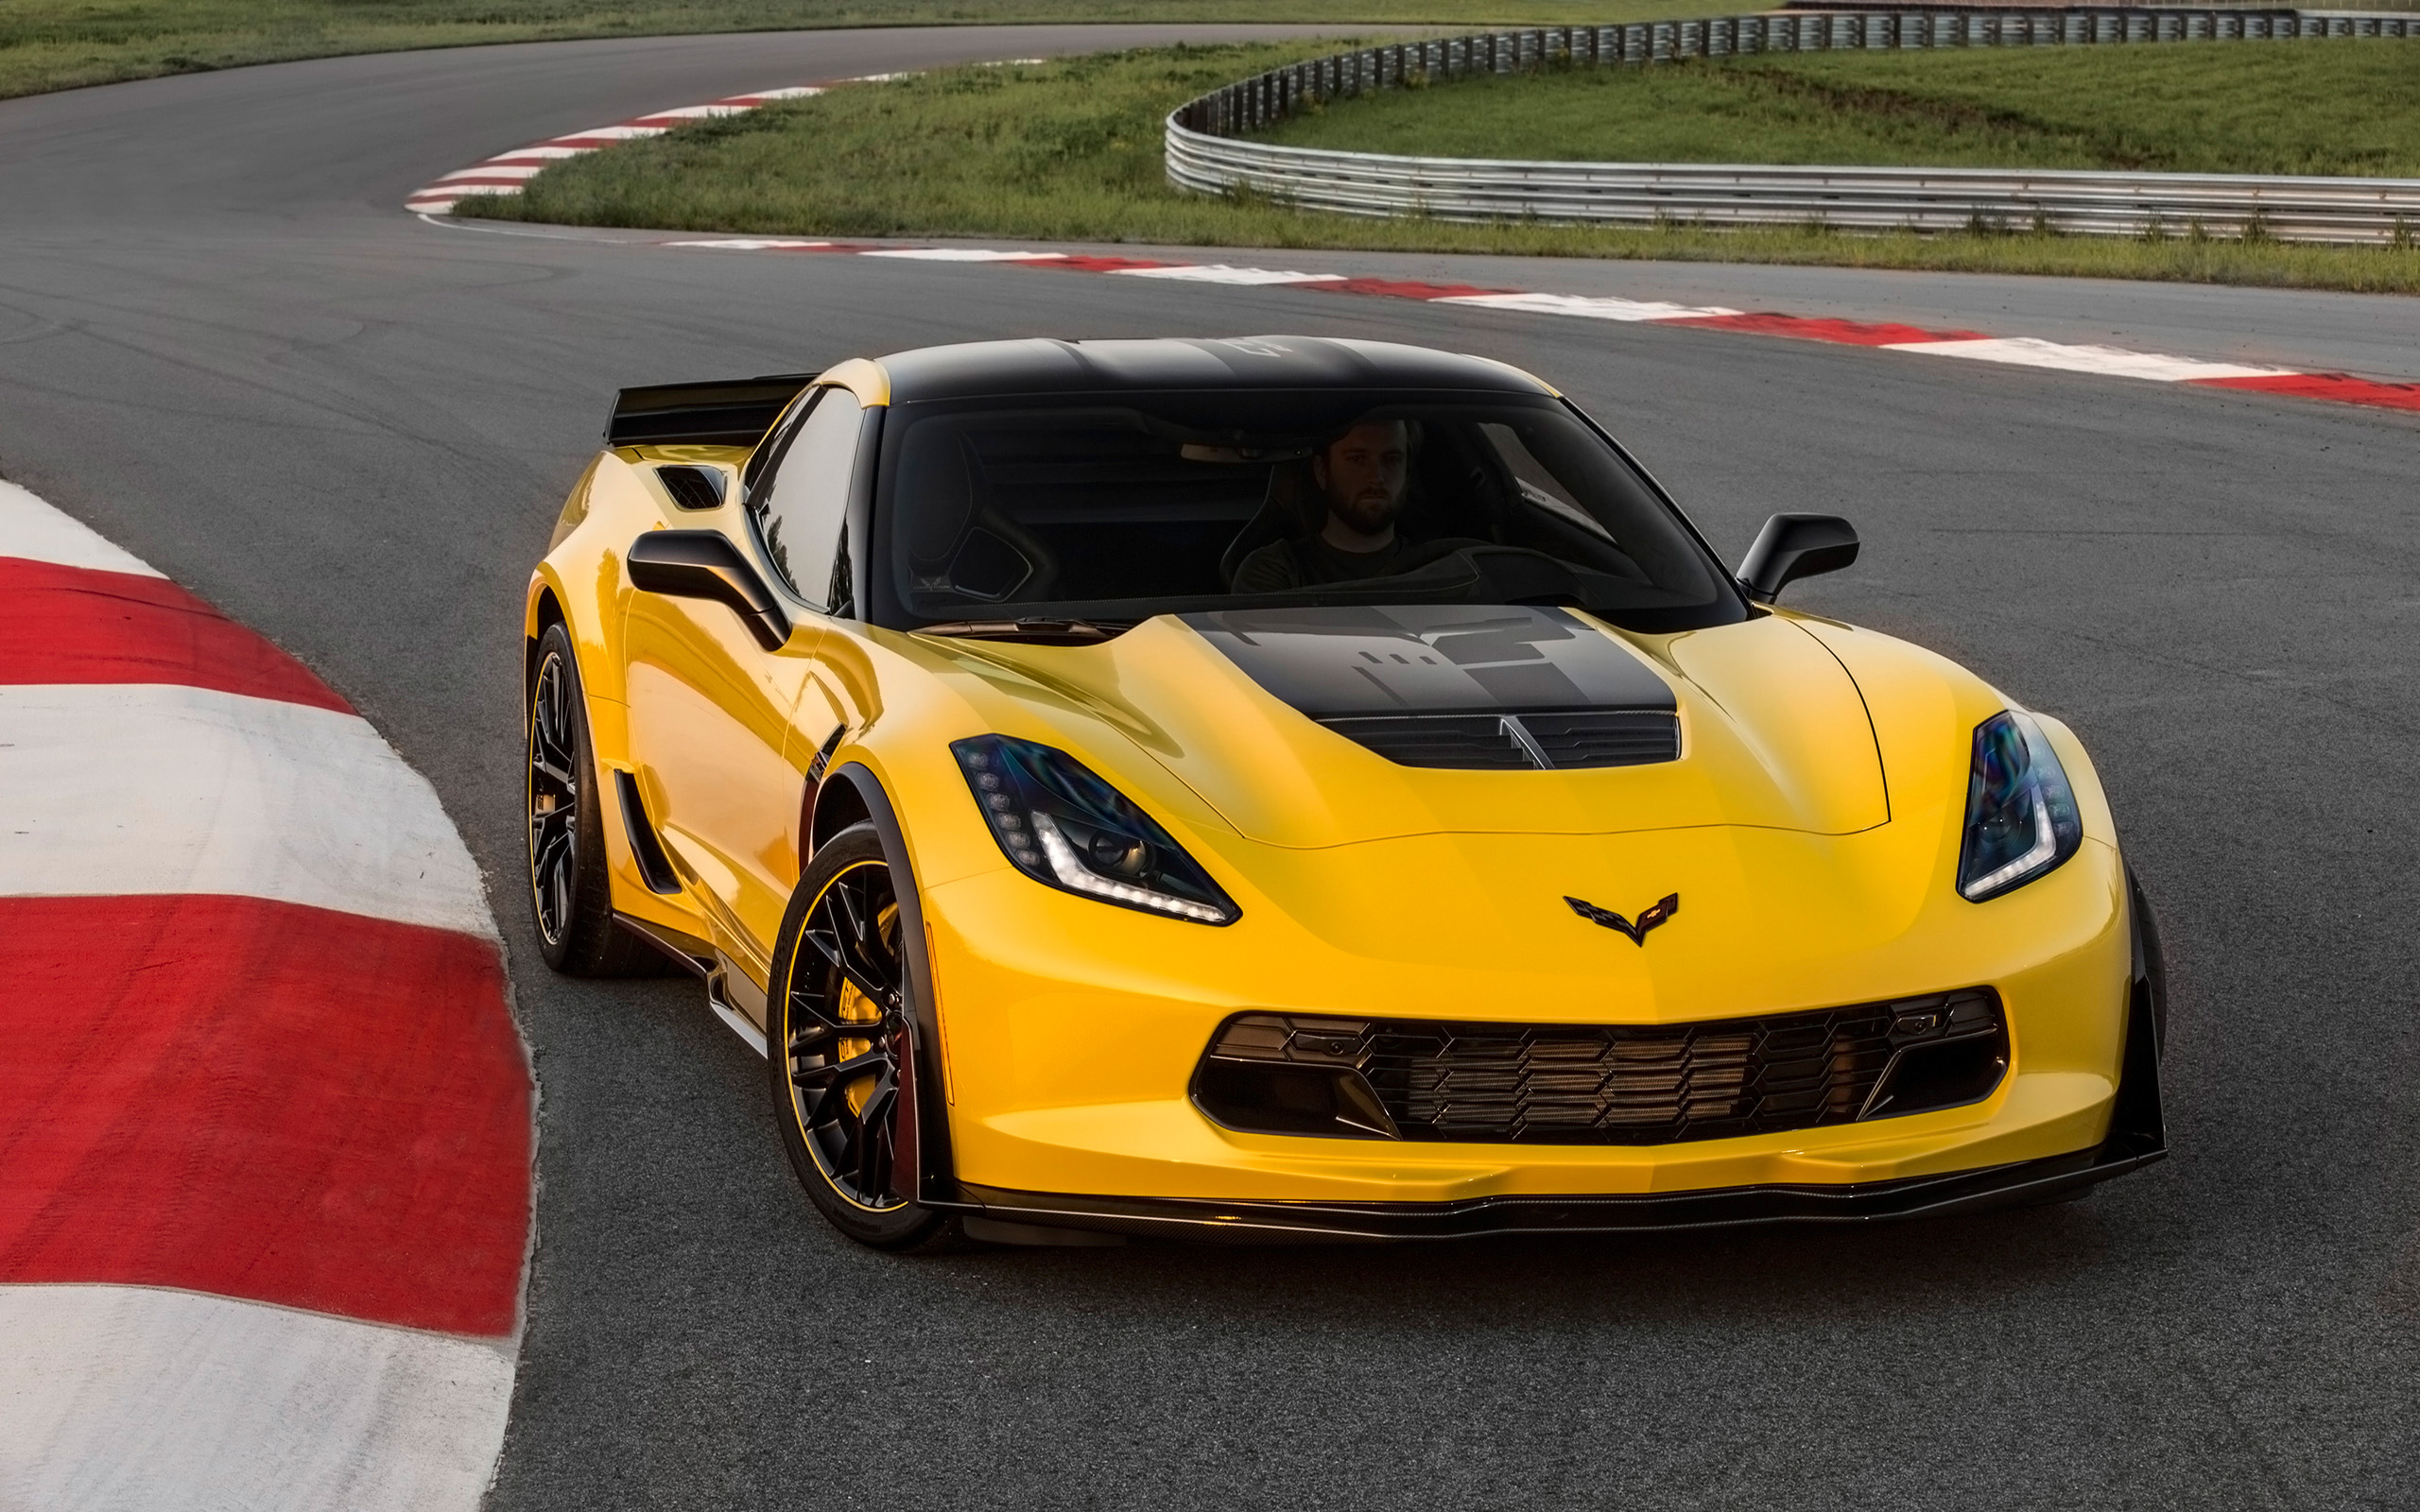 2016 chevrolet corvette z06 c7 r edition wallpaper hd car wallpapers id 5304. Black Bedroom Furniture Sets. Home Design Ideas